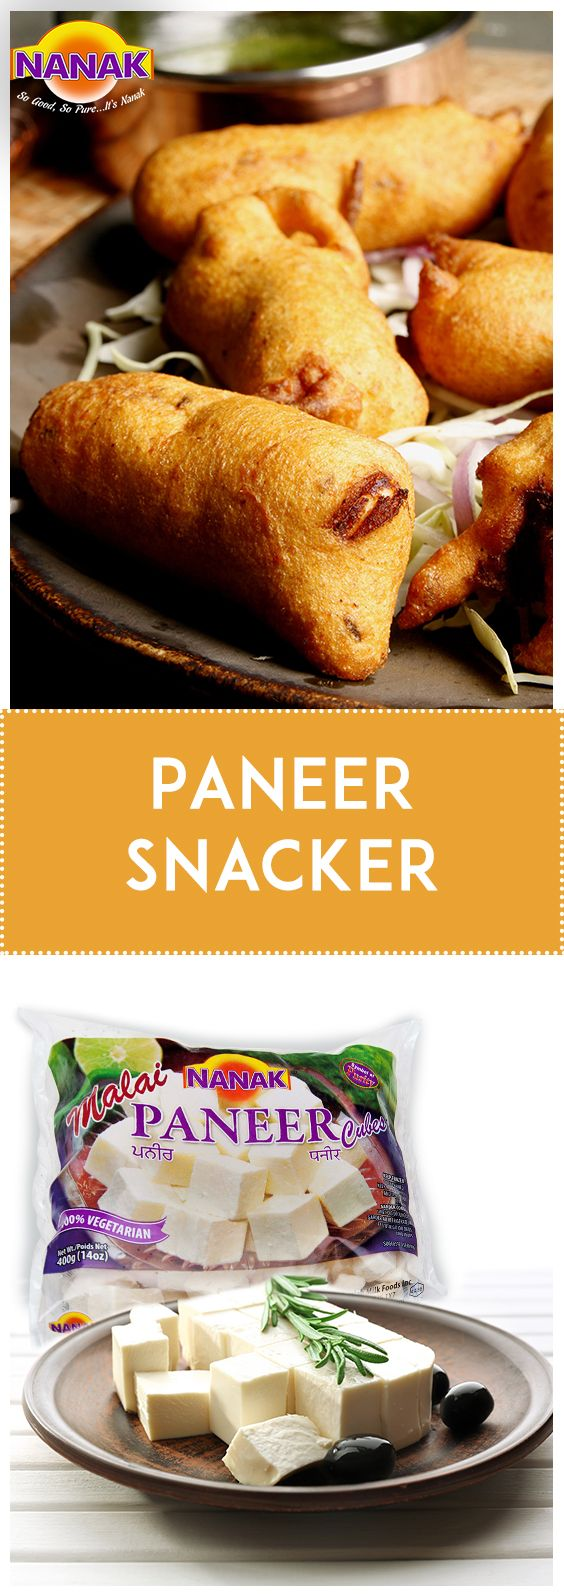 Snack on some delicious Paneer Snackers and pump up dull days. Make some today! #Recipe #Paneer  Ingredients: Paneer (cottage cheese)- 150 gms Olive oil- 1 tsp Salt to taste Pizza sauce as required Salted biscuits- 16 Yellow bell peppers, cut into thin strips(for garnish) Fresh mint sprigs (for garnish)